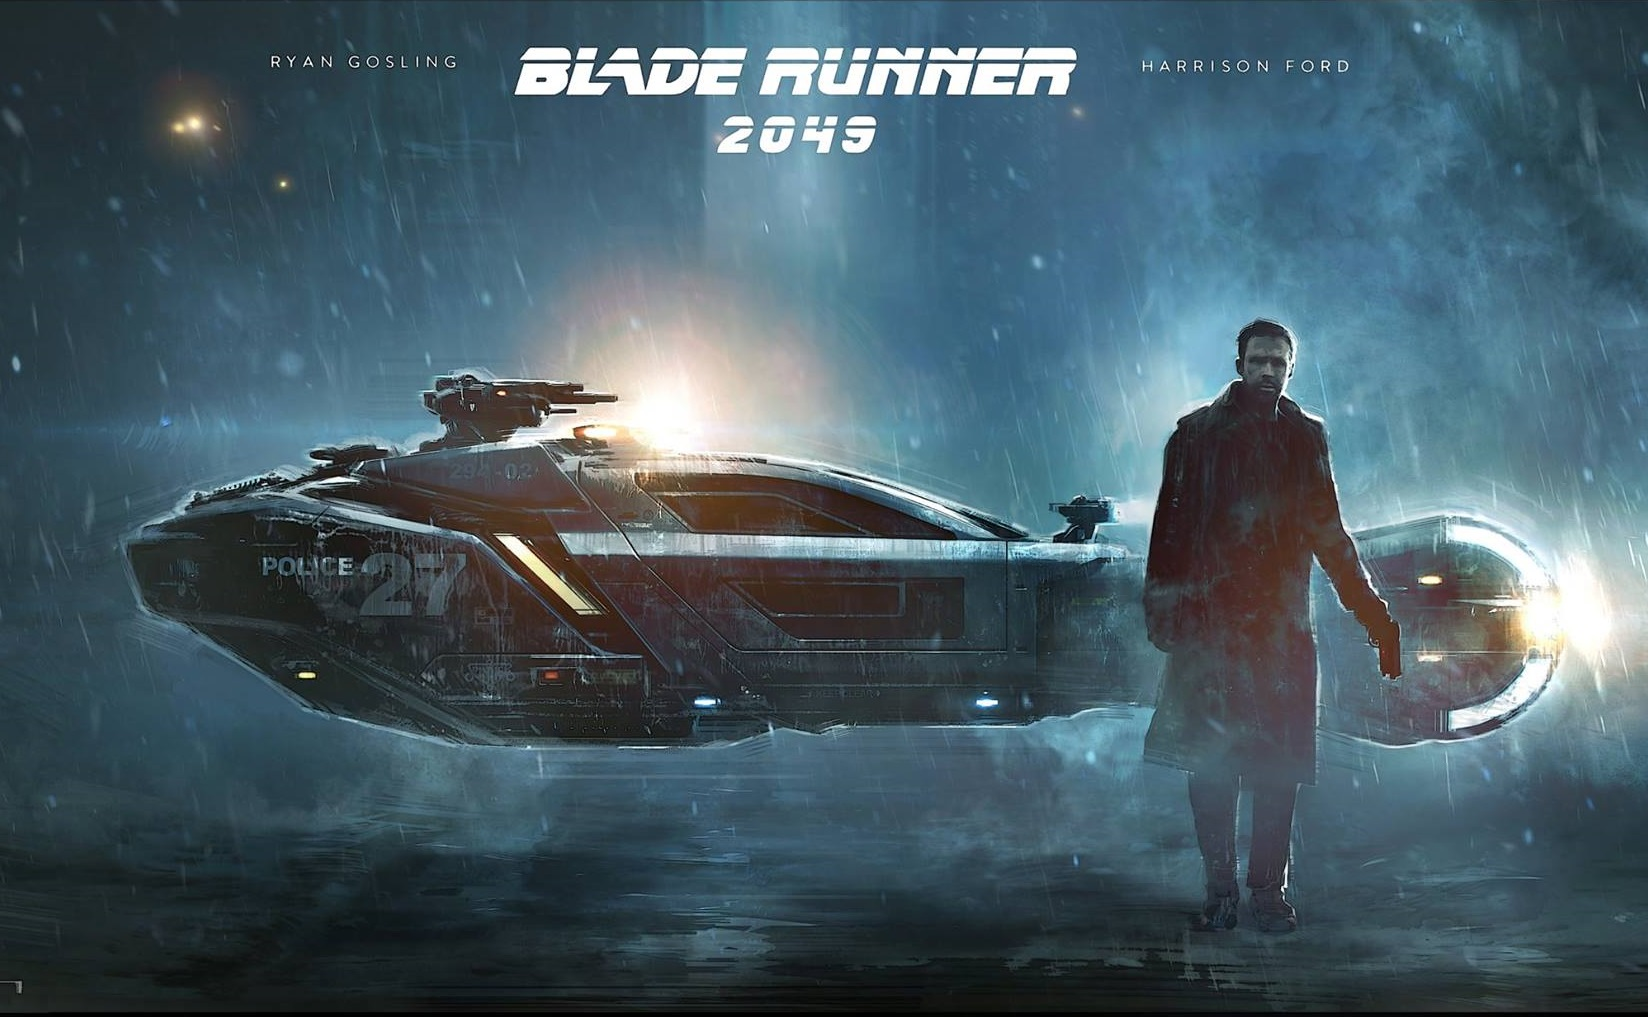 A selection of fine arts dedicated to Blade Runner 2049